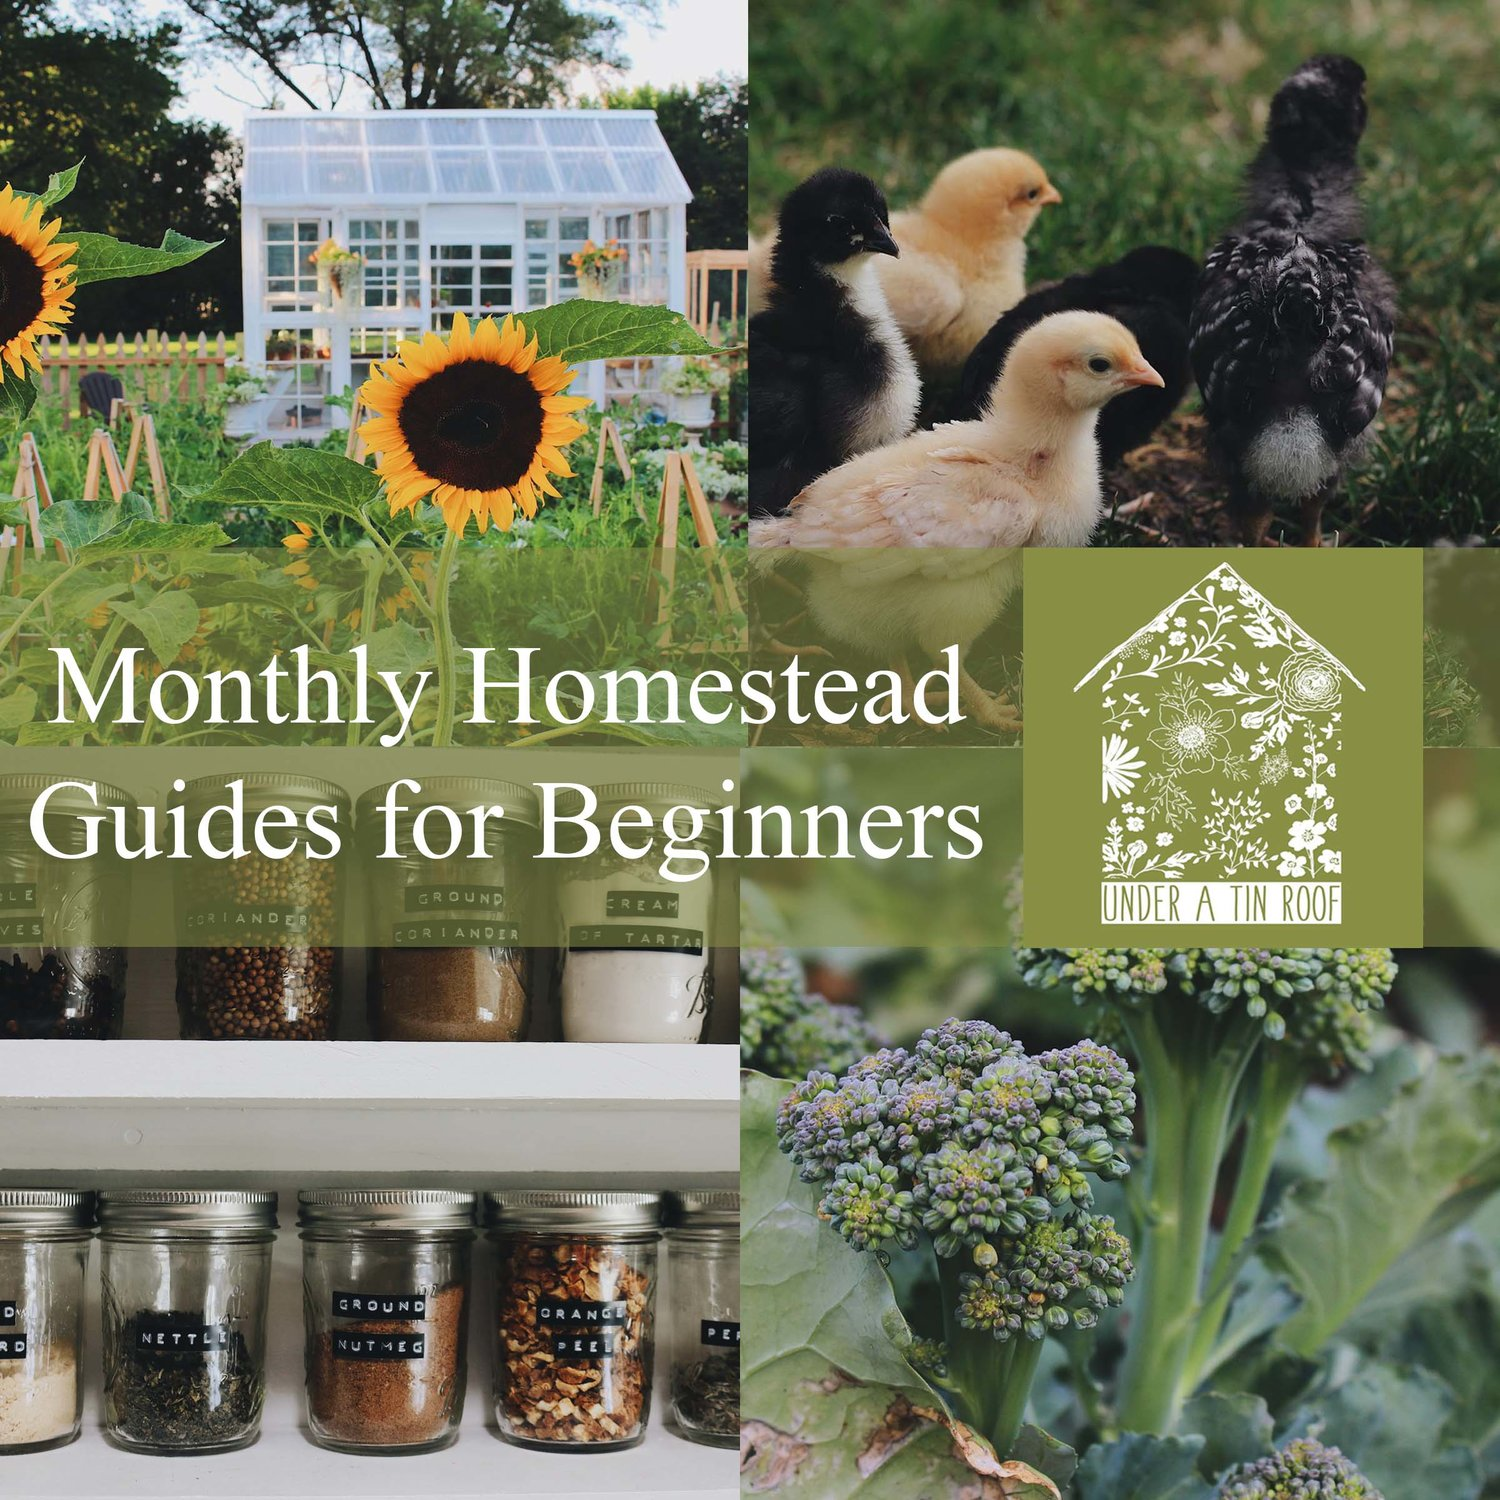 Monthly Homestead Guides for Beginners